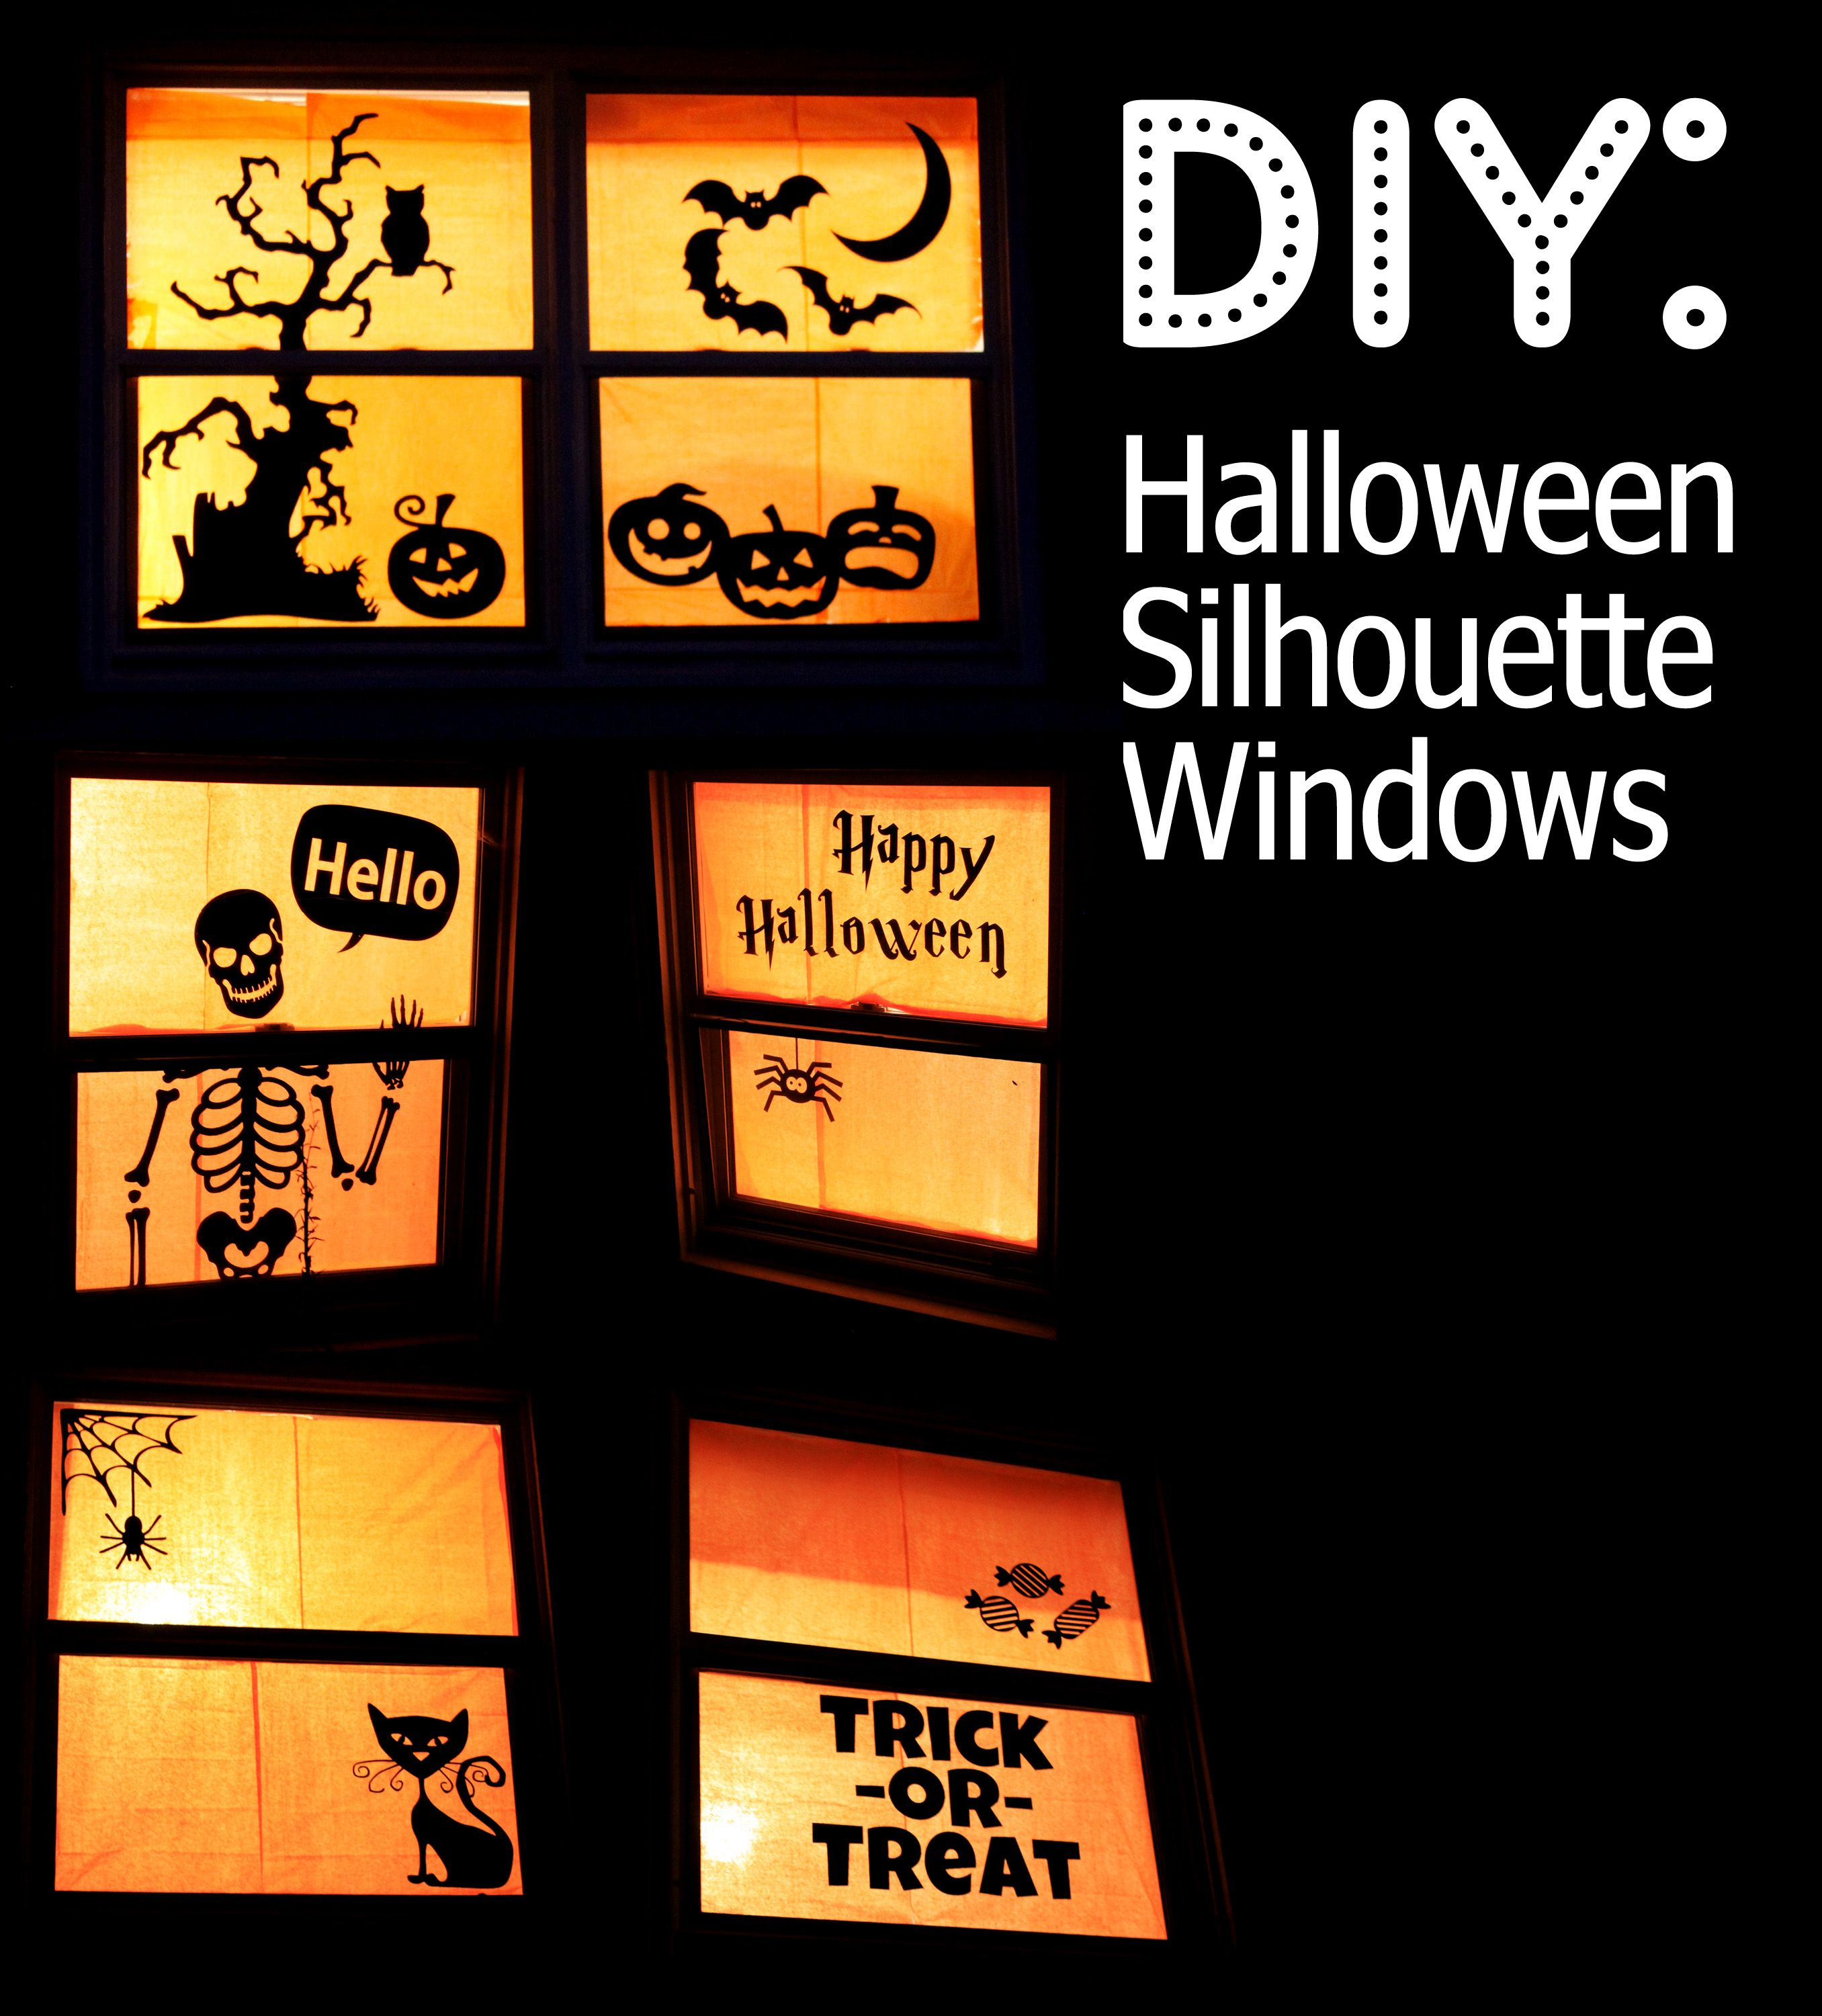 Window decor for halloween  halloween window silhouettes takes around hours and less than